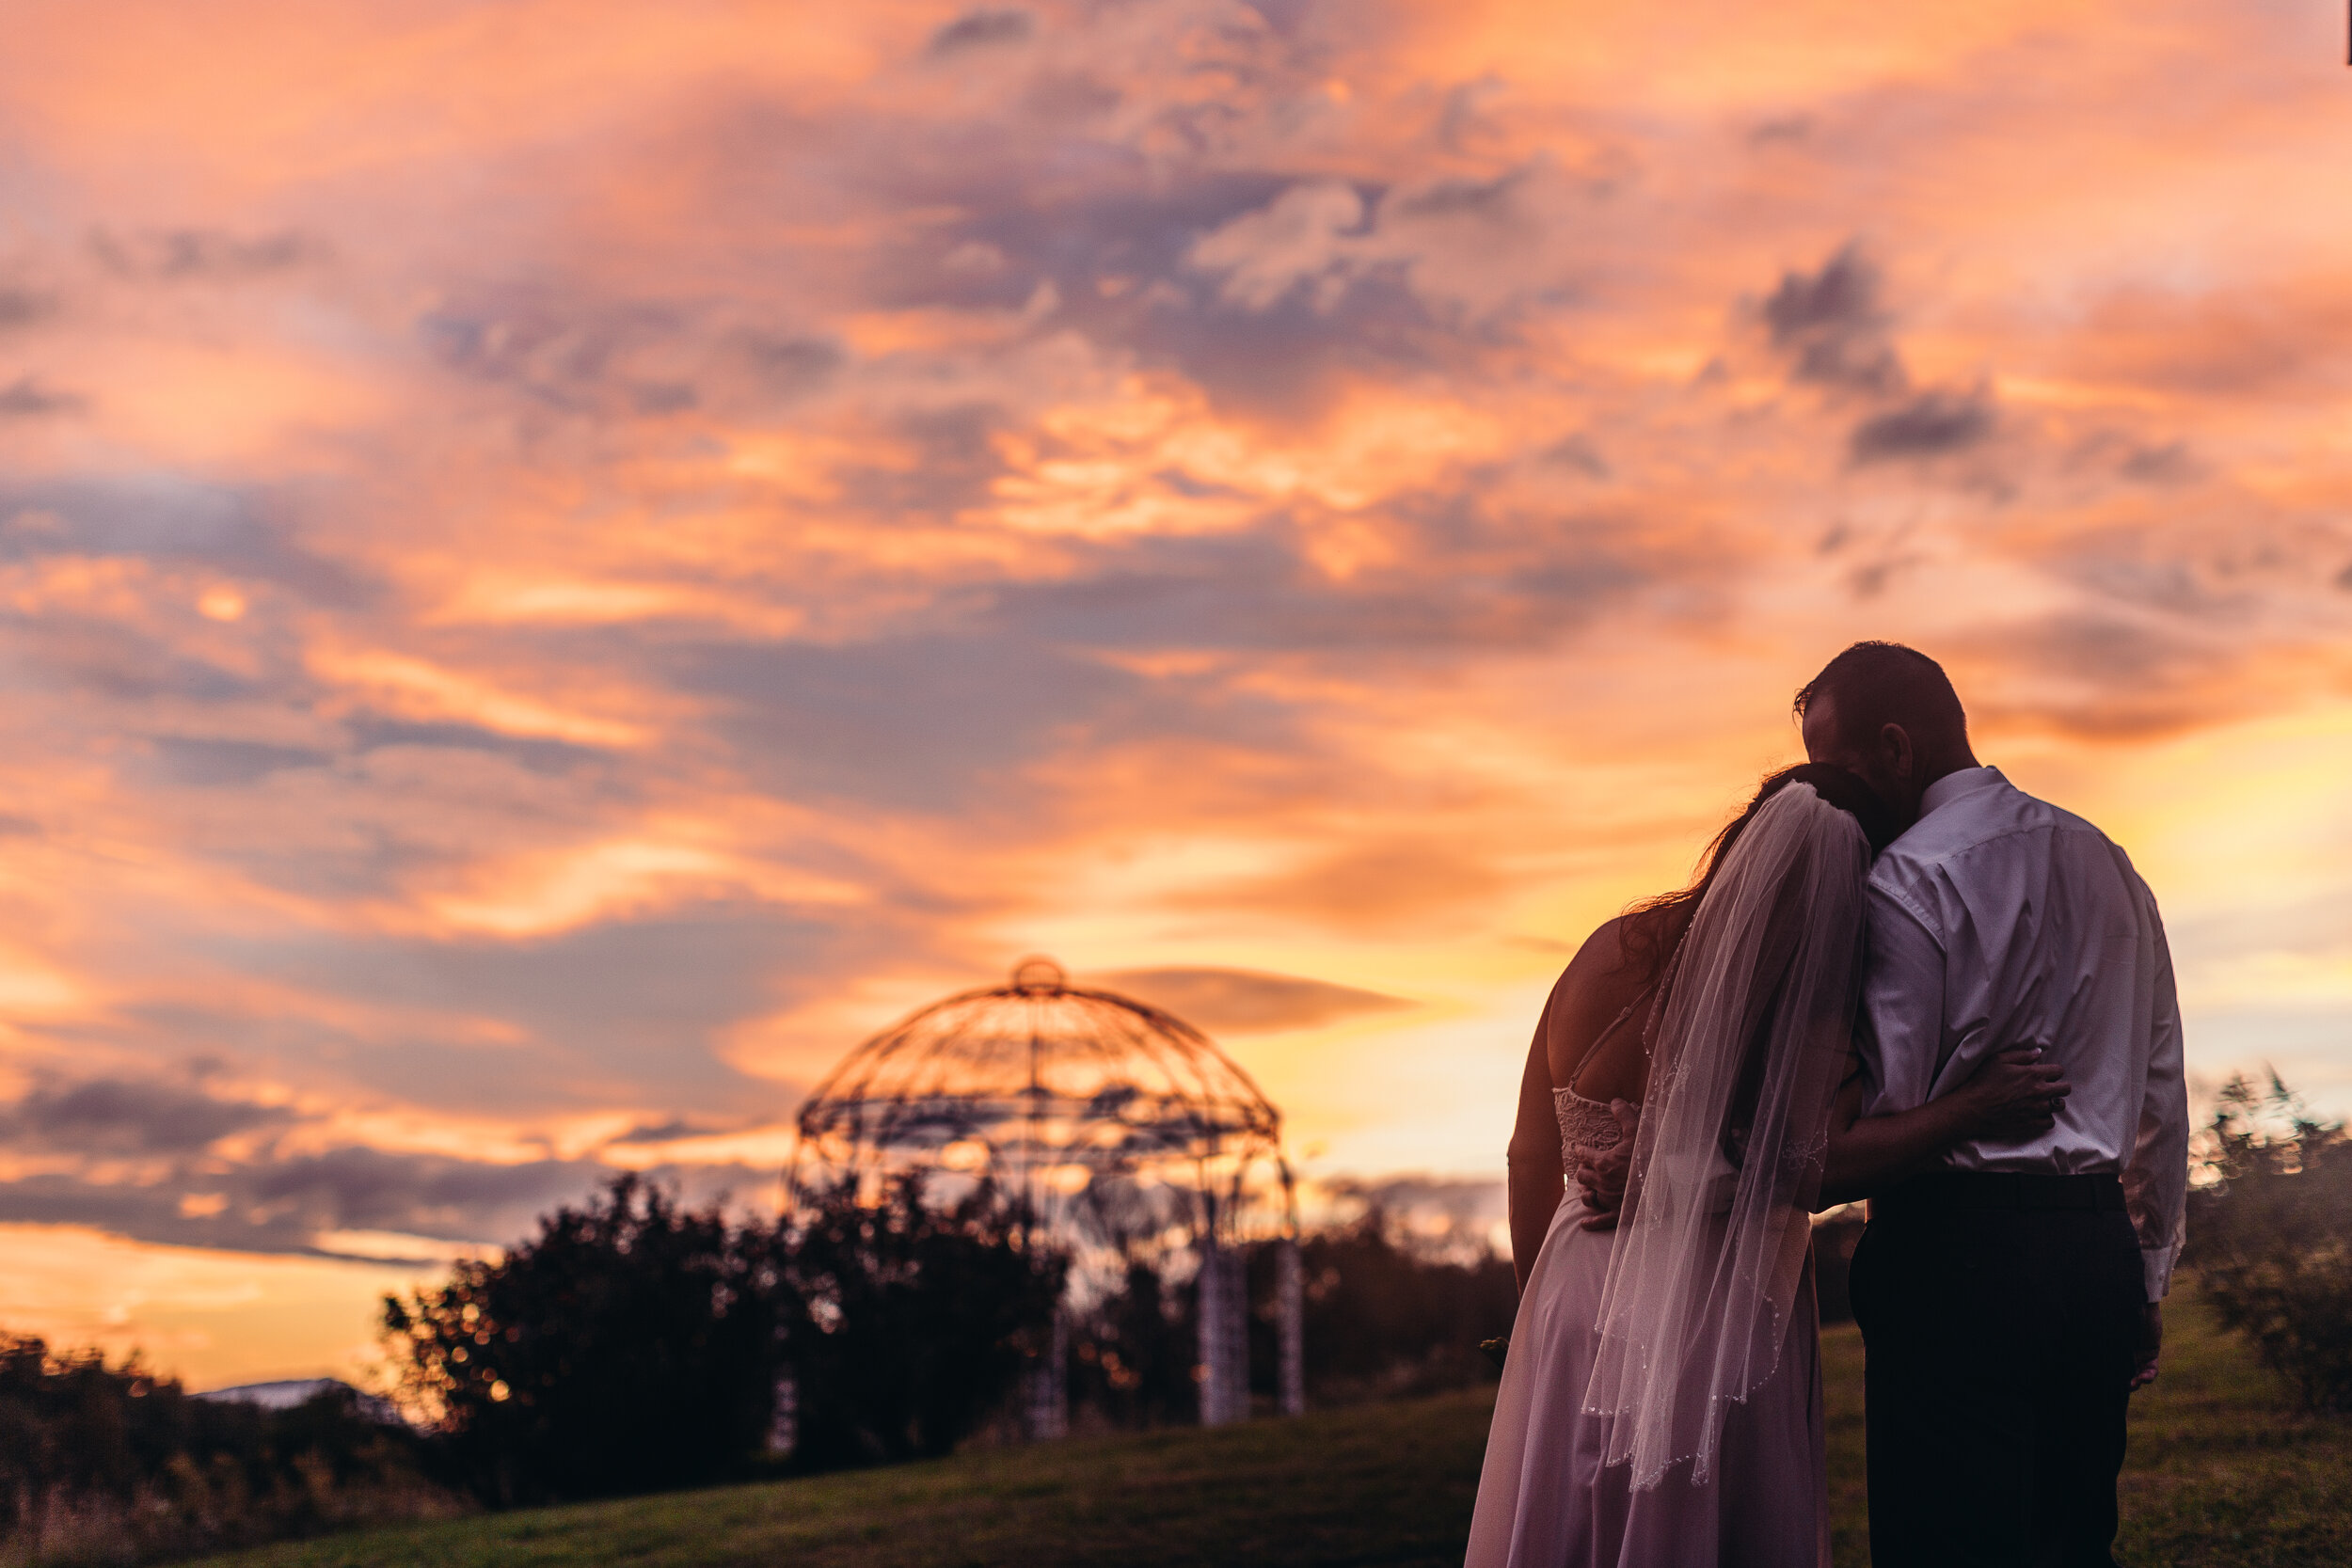 """""""I Could Not Ask For Anything Better…"""" - From start to finish, everyone we dealt with was courteous, professional and seemed genuinely interested in our day and making things as seamless and easy as possible.  There were no hidden costs or surprises.  The day was perfect, the grounds and facility stunning and the sunset looked like a painted backdrop.  I would recommend Flower Mountain to anyone looking for a beautiful wedding in Tennessee.-Leigh & Jason Terry"""